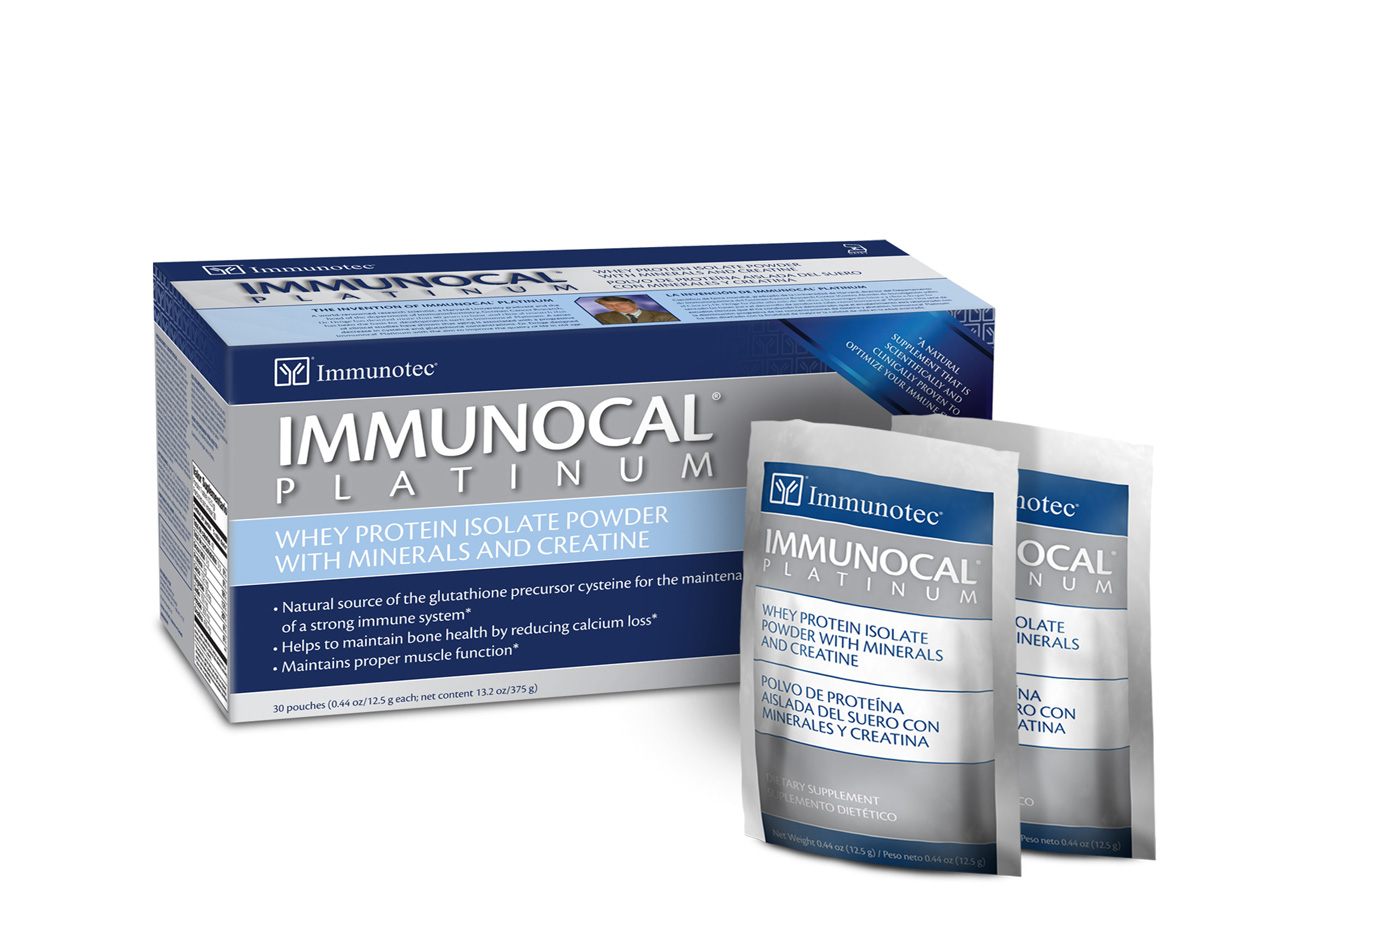 healthy_life_strong_immune system_Immunocal_platinum_protect_health_immune